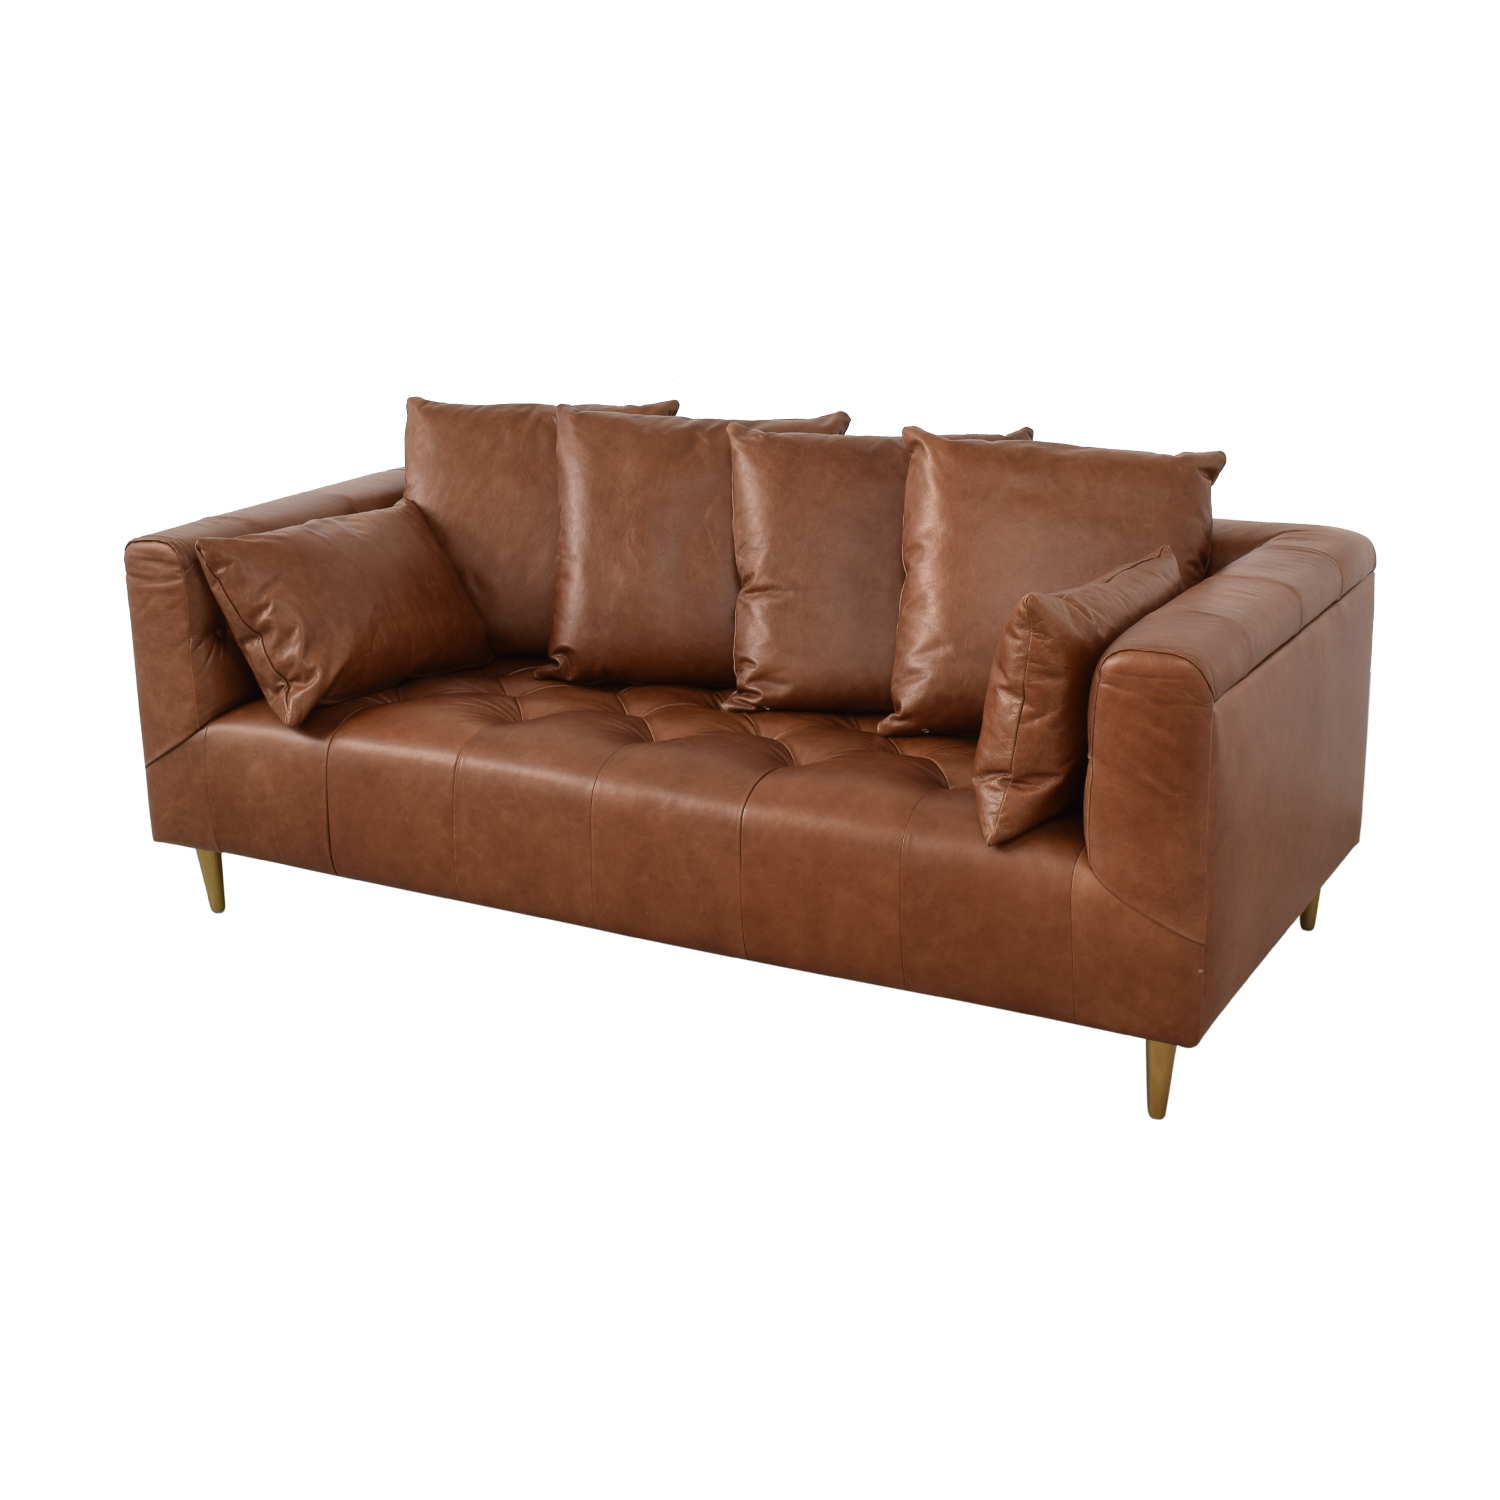 Interior Define Ms. Chesterfield Cognac Tufted Sofa coupon